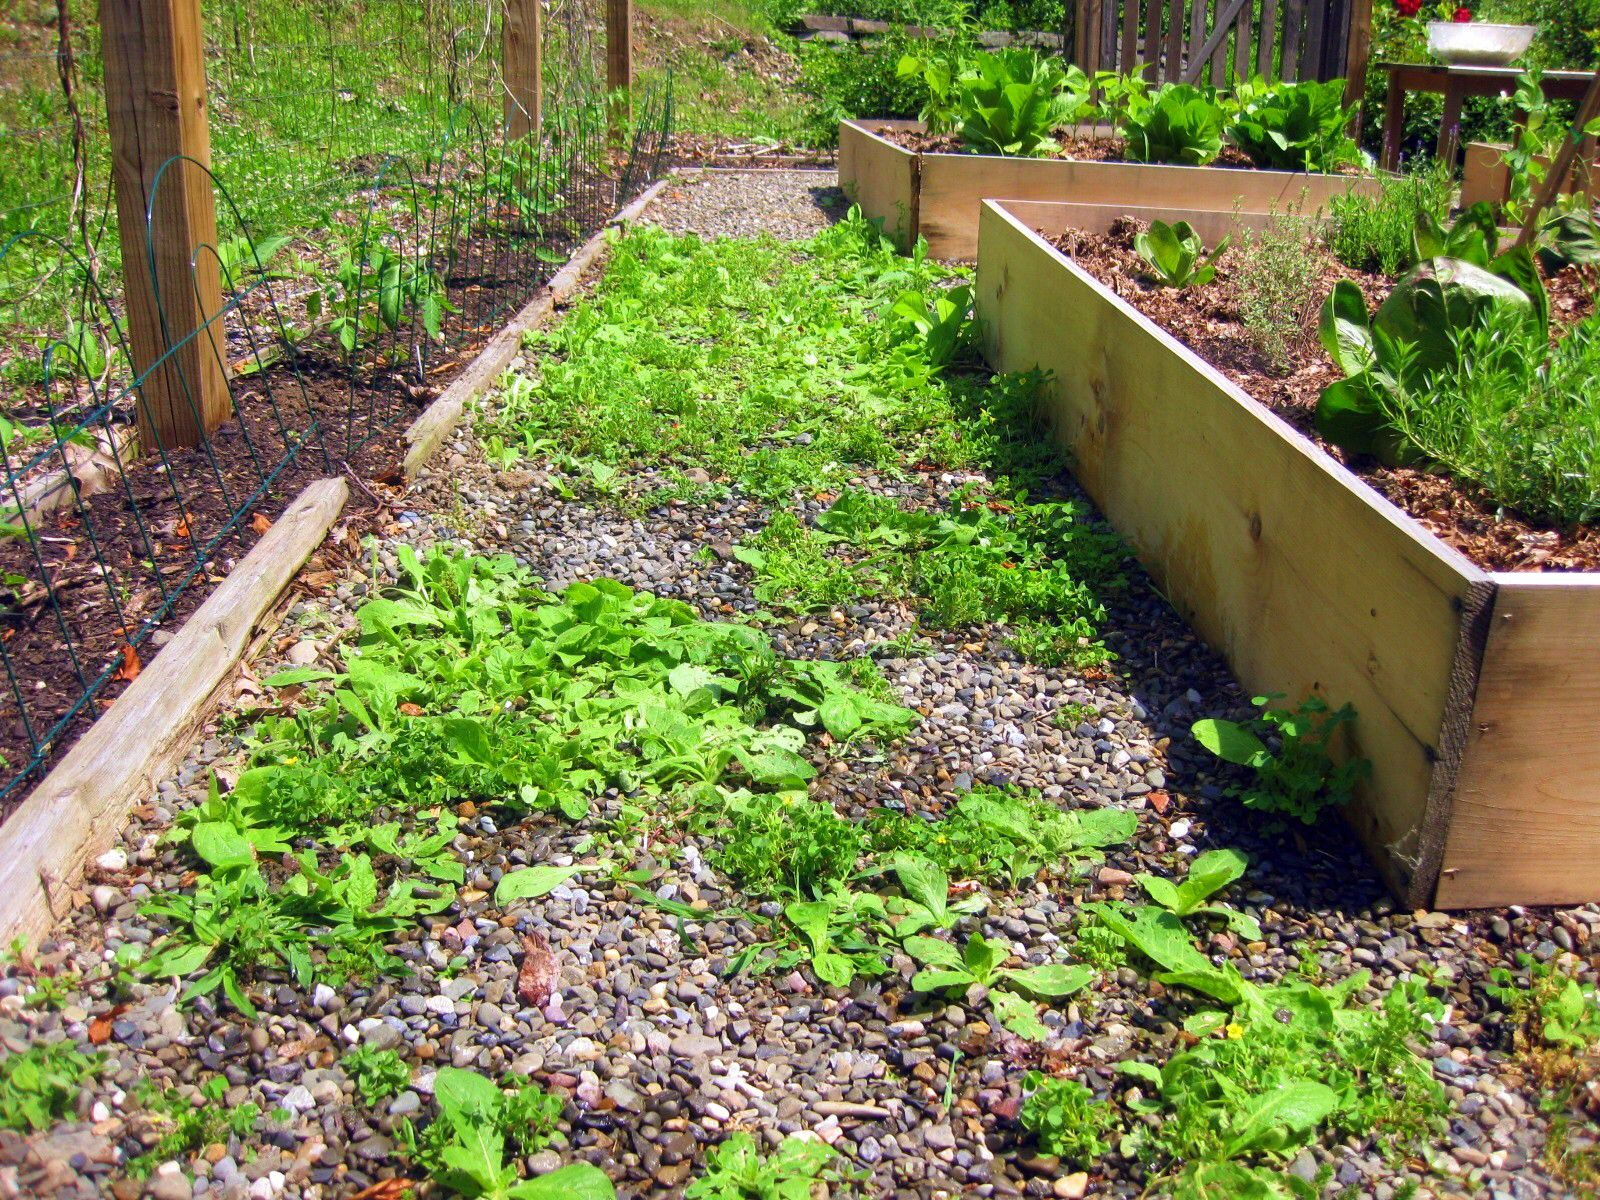 Merveilleux Weeds In Paths? Use Vinegar, Not Roundup | A Garden For The House